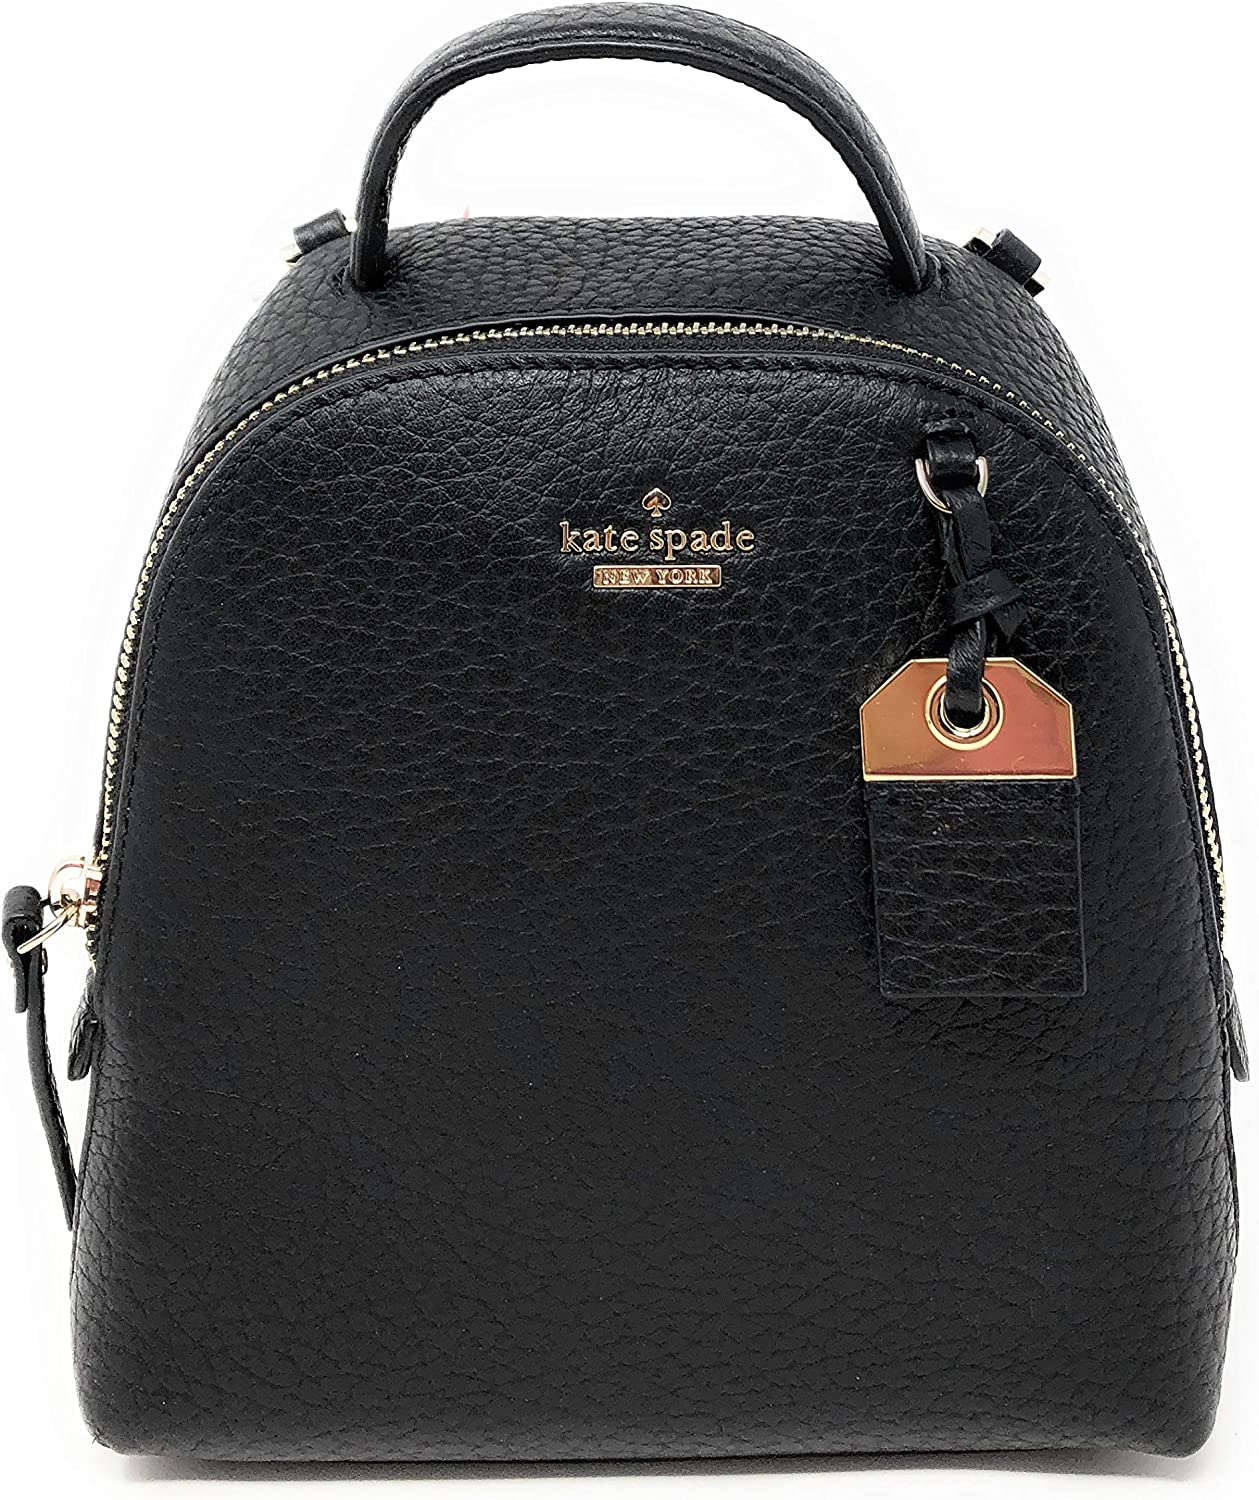 Kate Spade New York Carter Mini Caden Leather Convertible Backpack